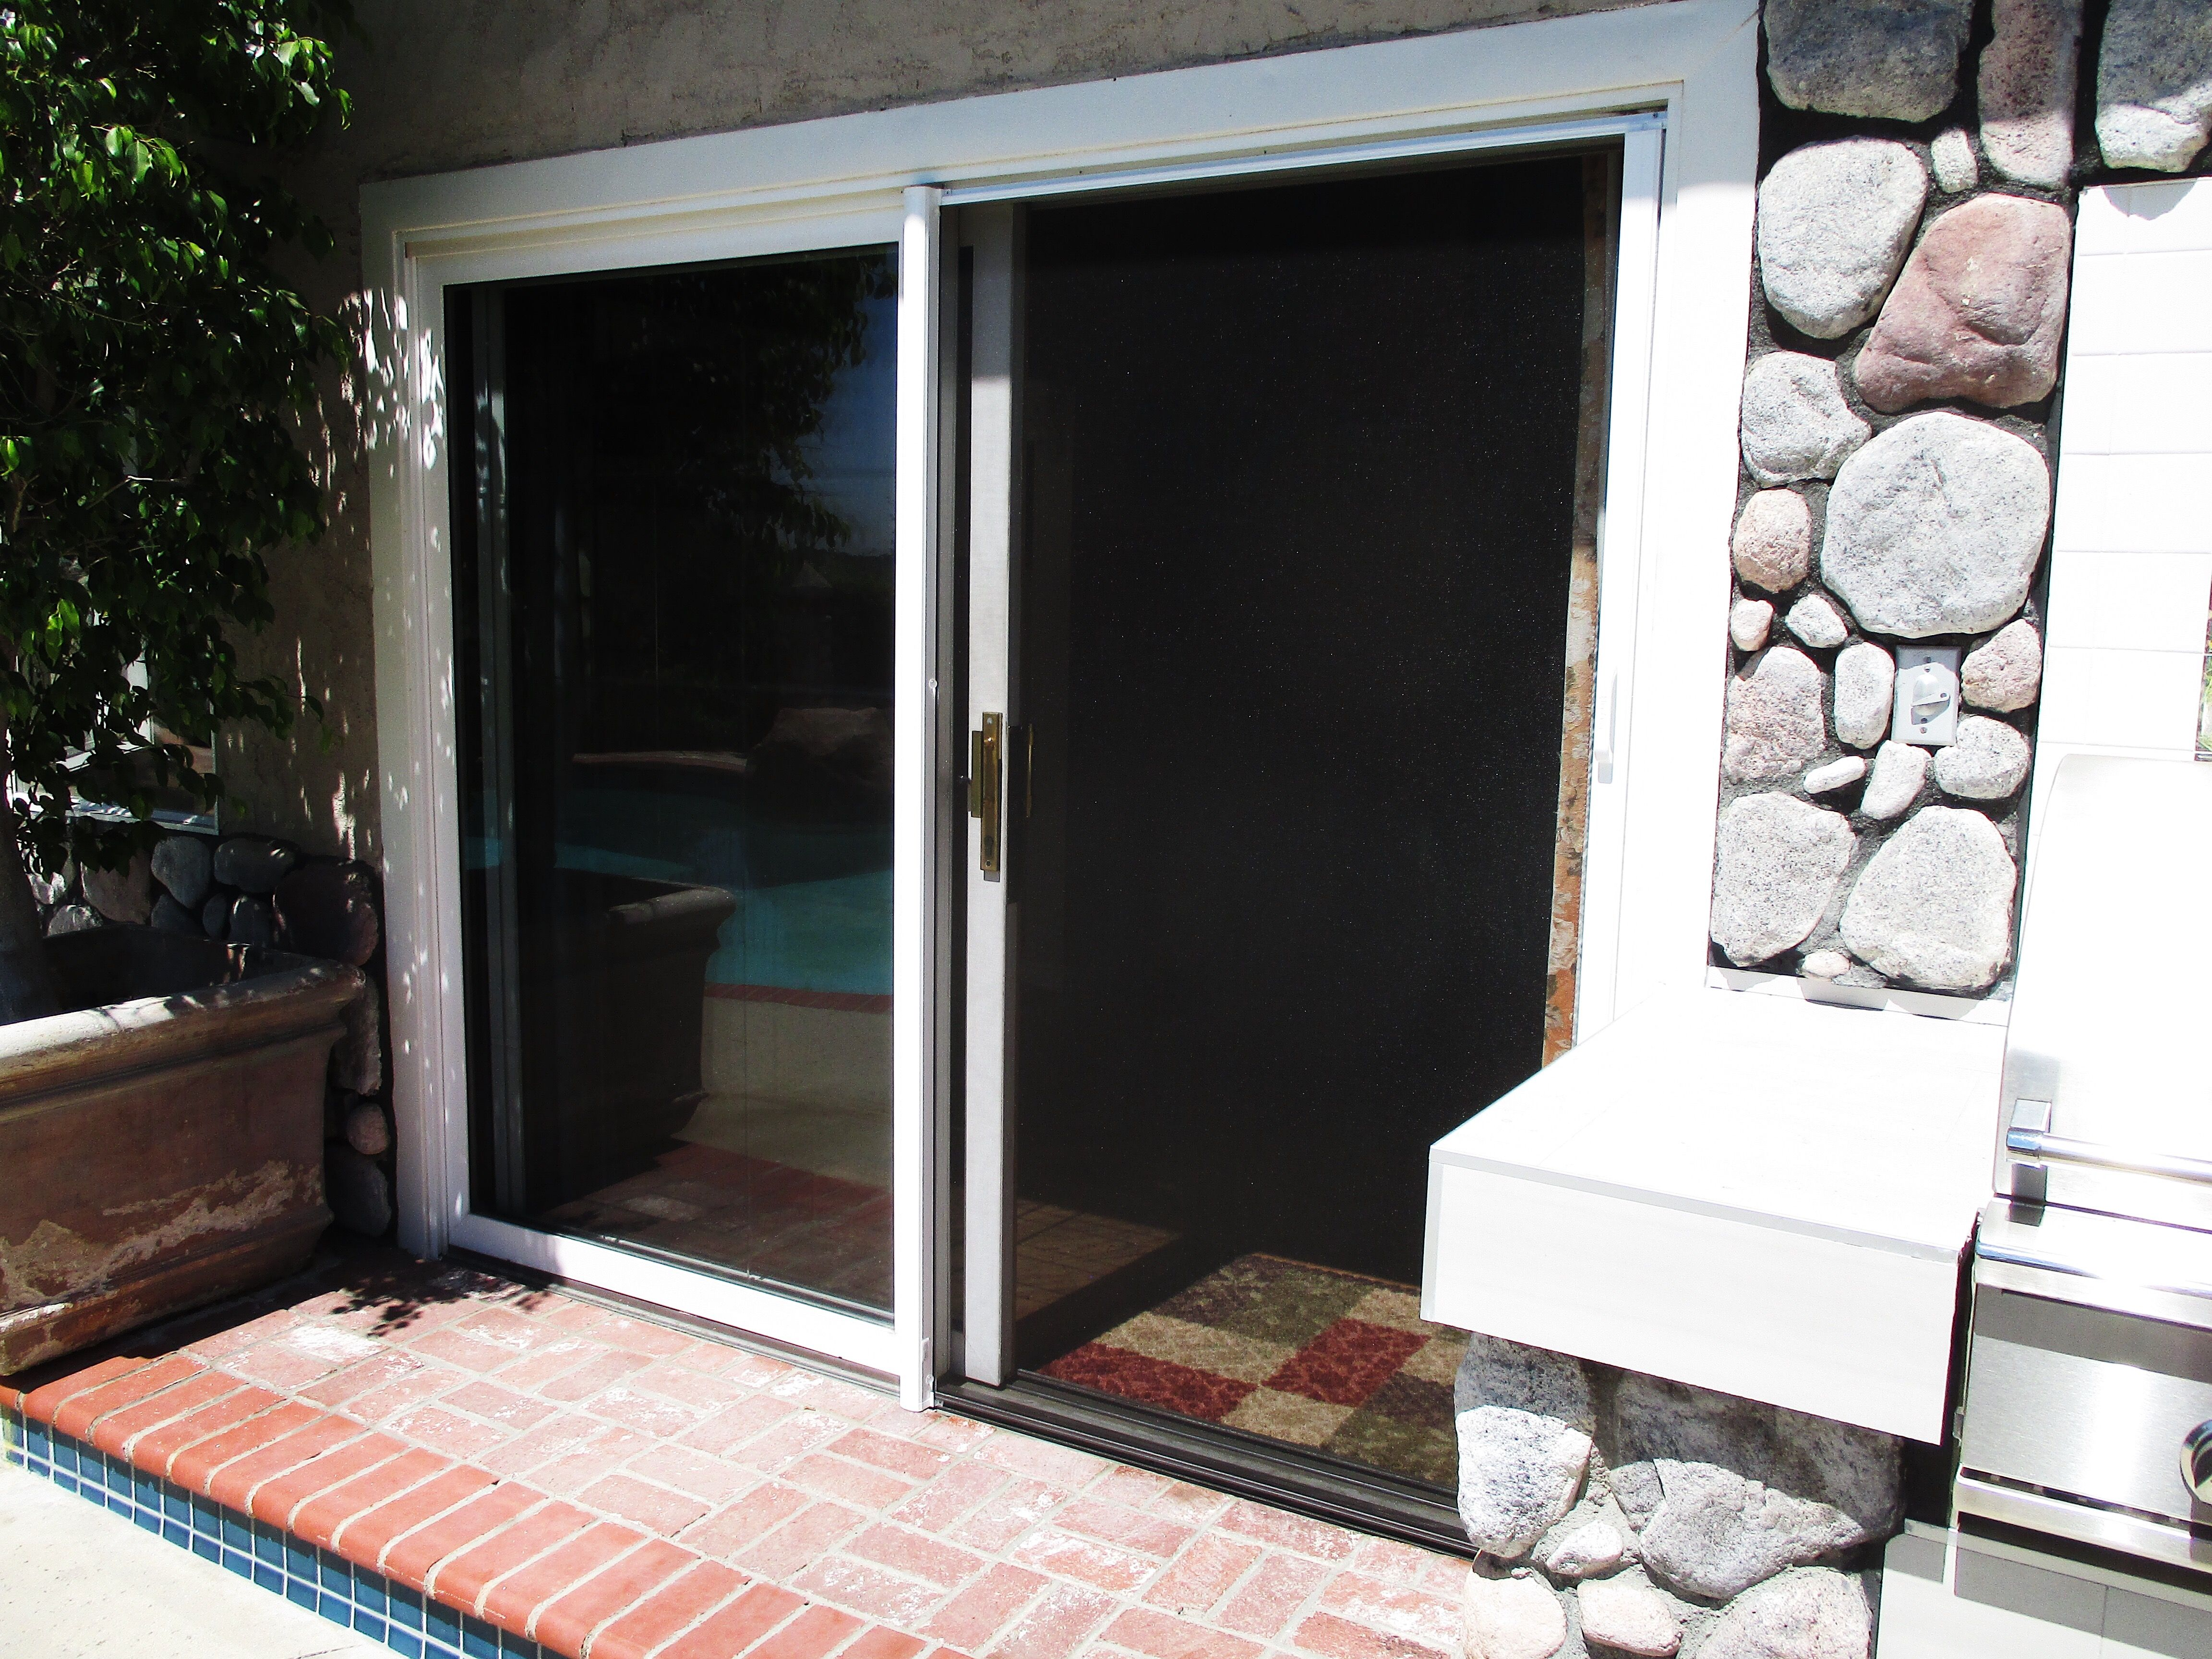 Check Out This White Framed StowAway Retractable Screen Door With Black  Fiberglass Mesh That We